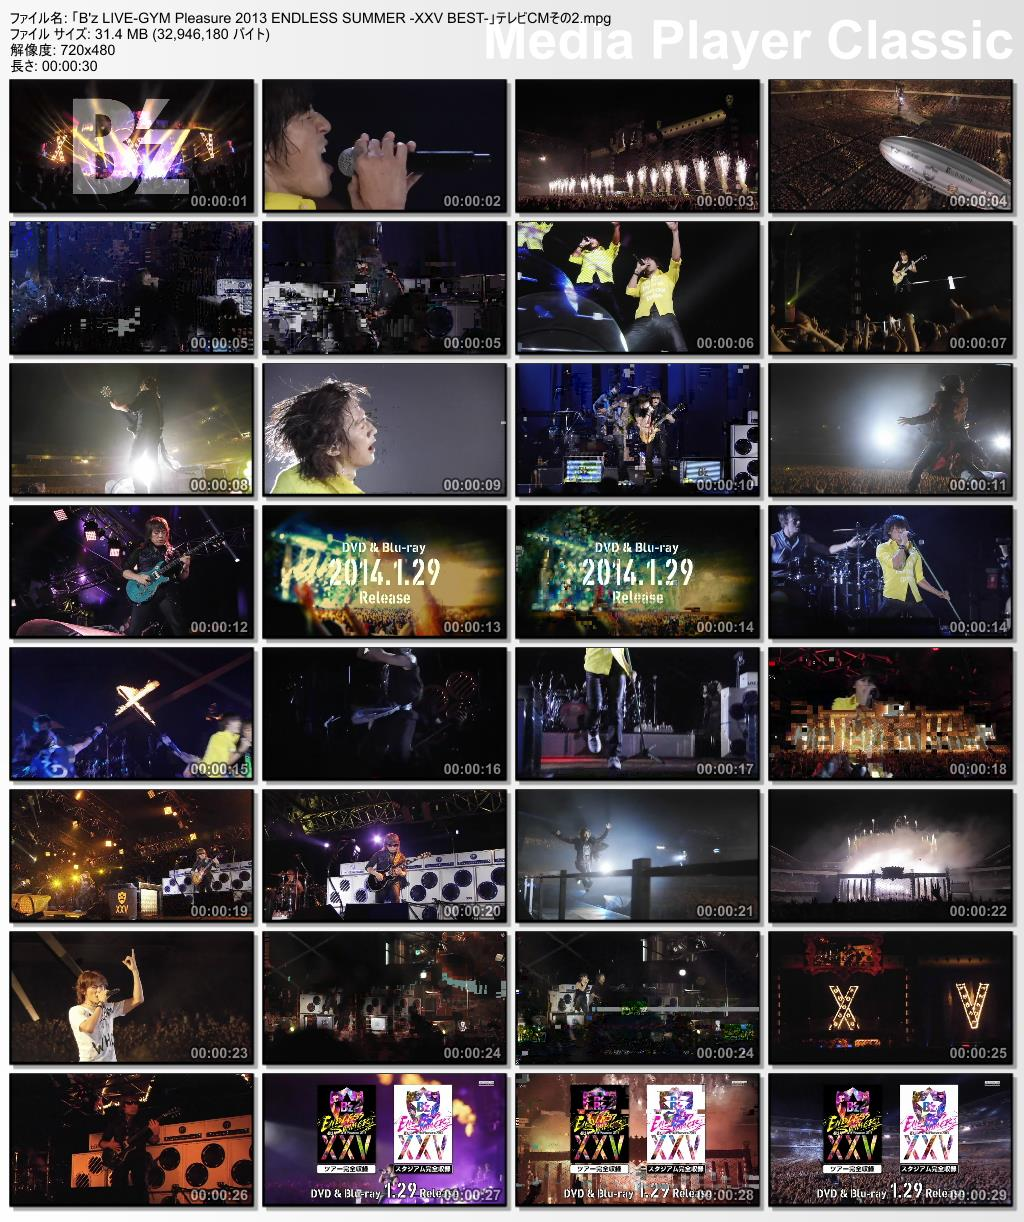 「B'z LIVE-GYM Pleasure 2013 ENDLESS SUMMER -XXV BEST-」テレビCM その2